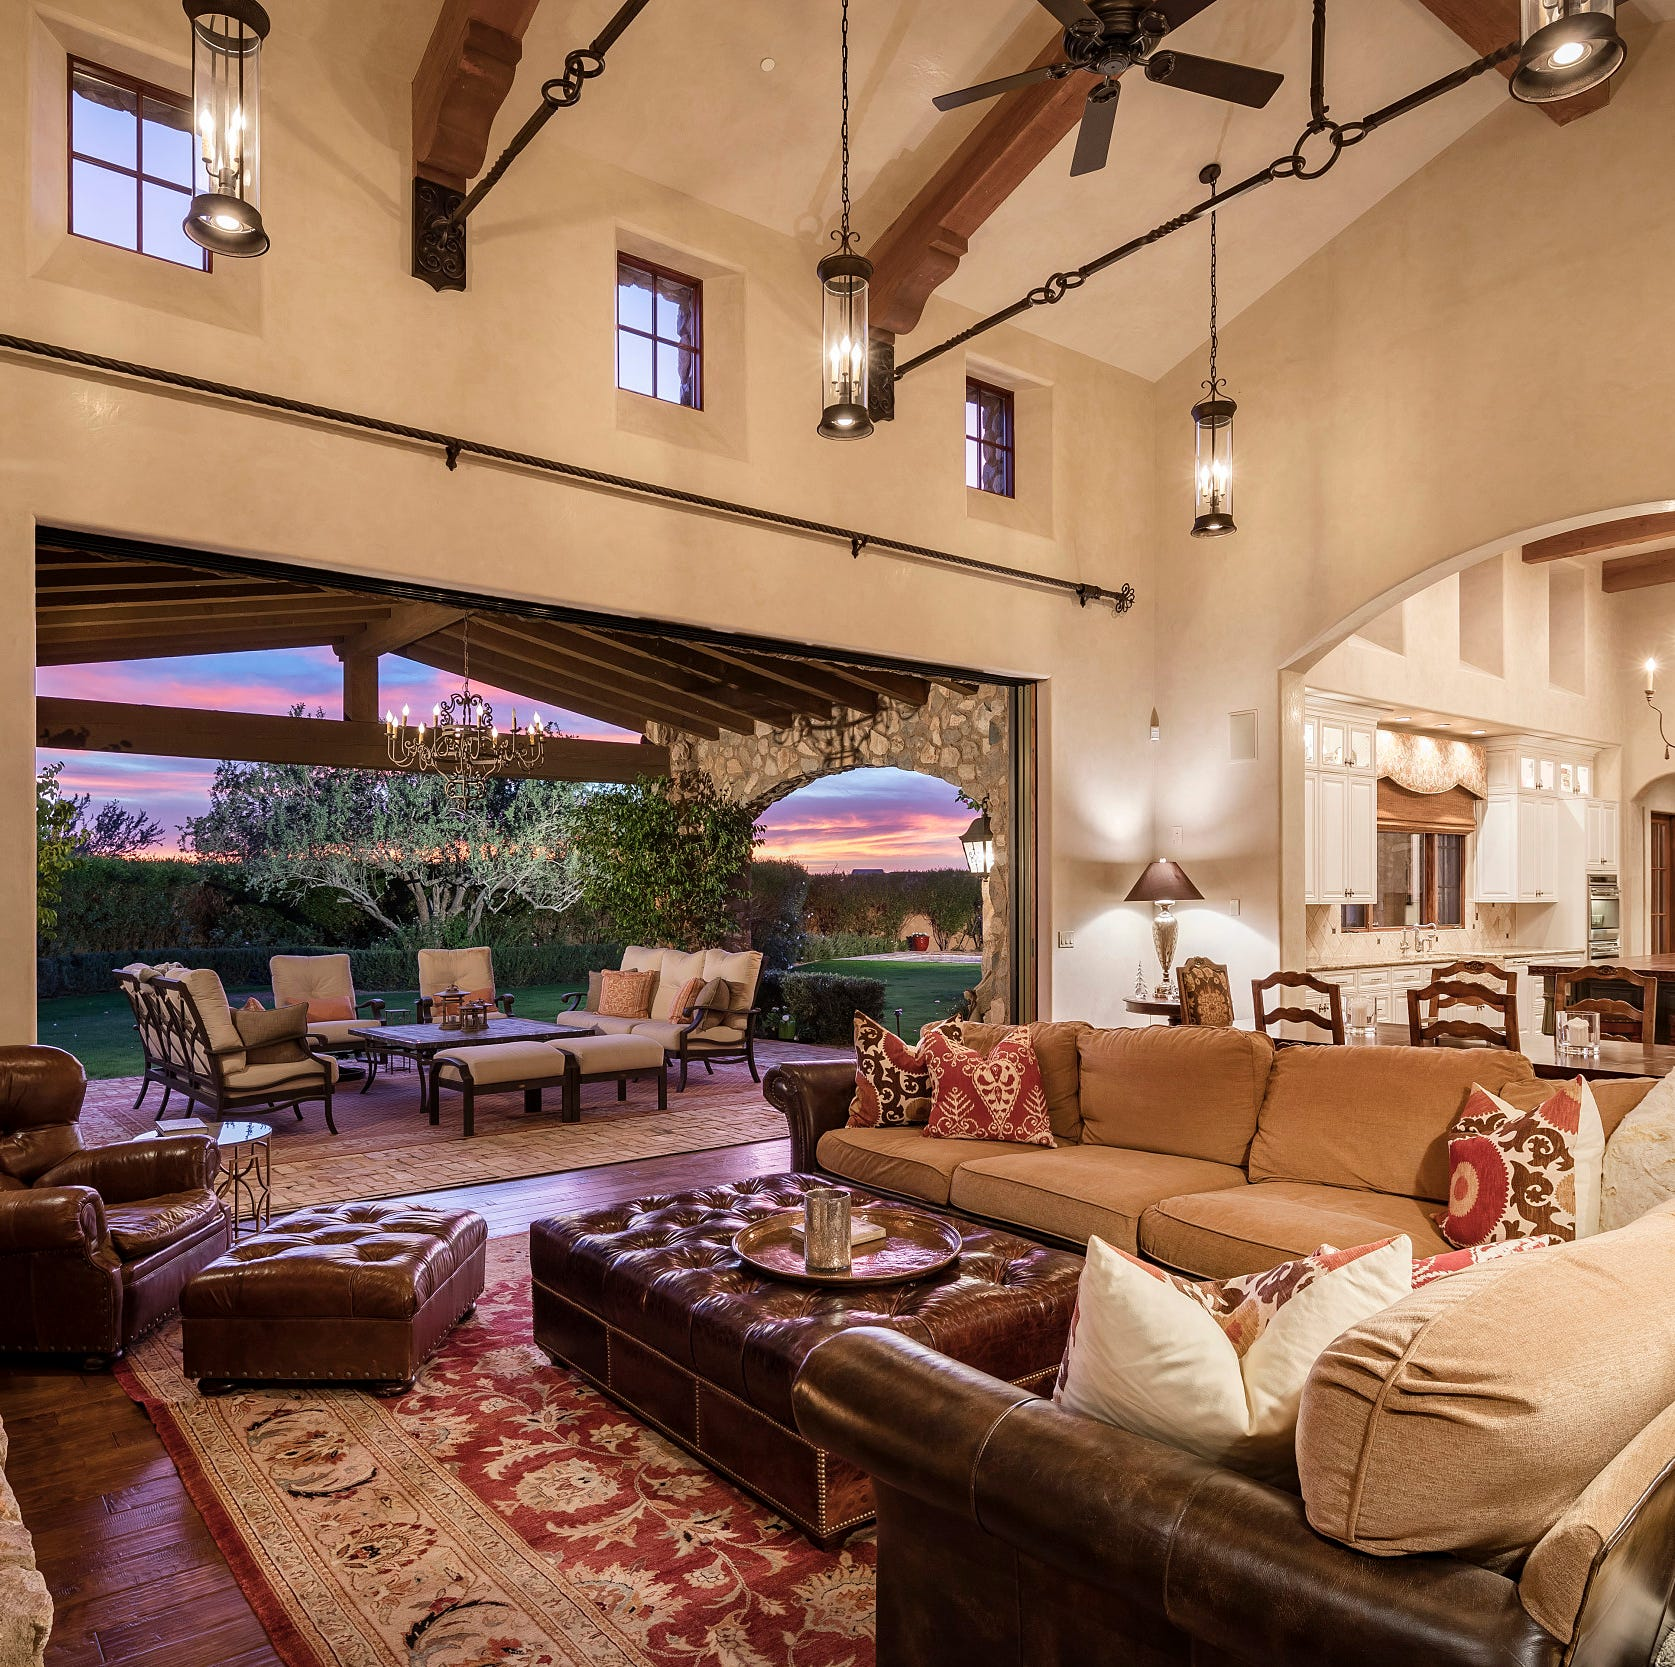 Arizona Coyotes captain buys $3.8M Paradise Valley mansion